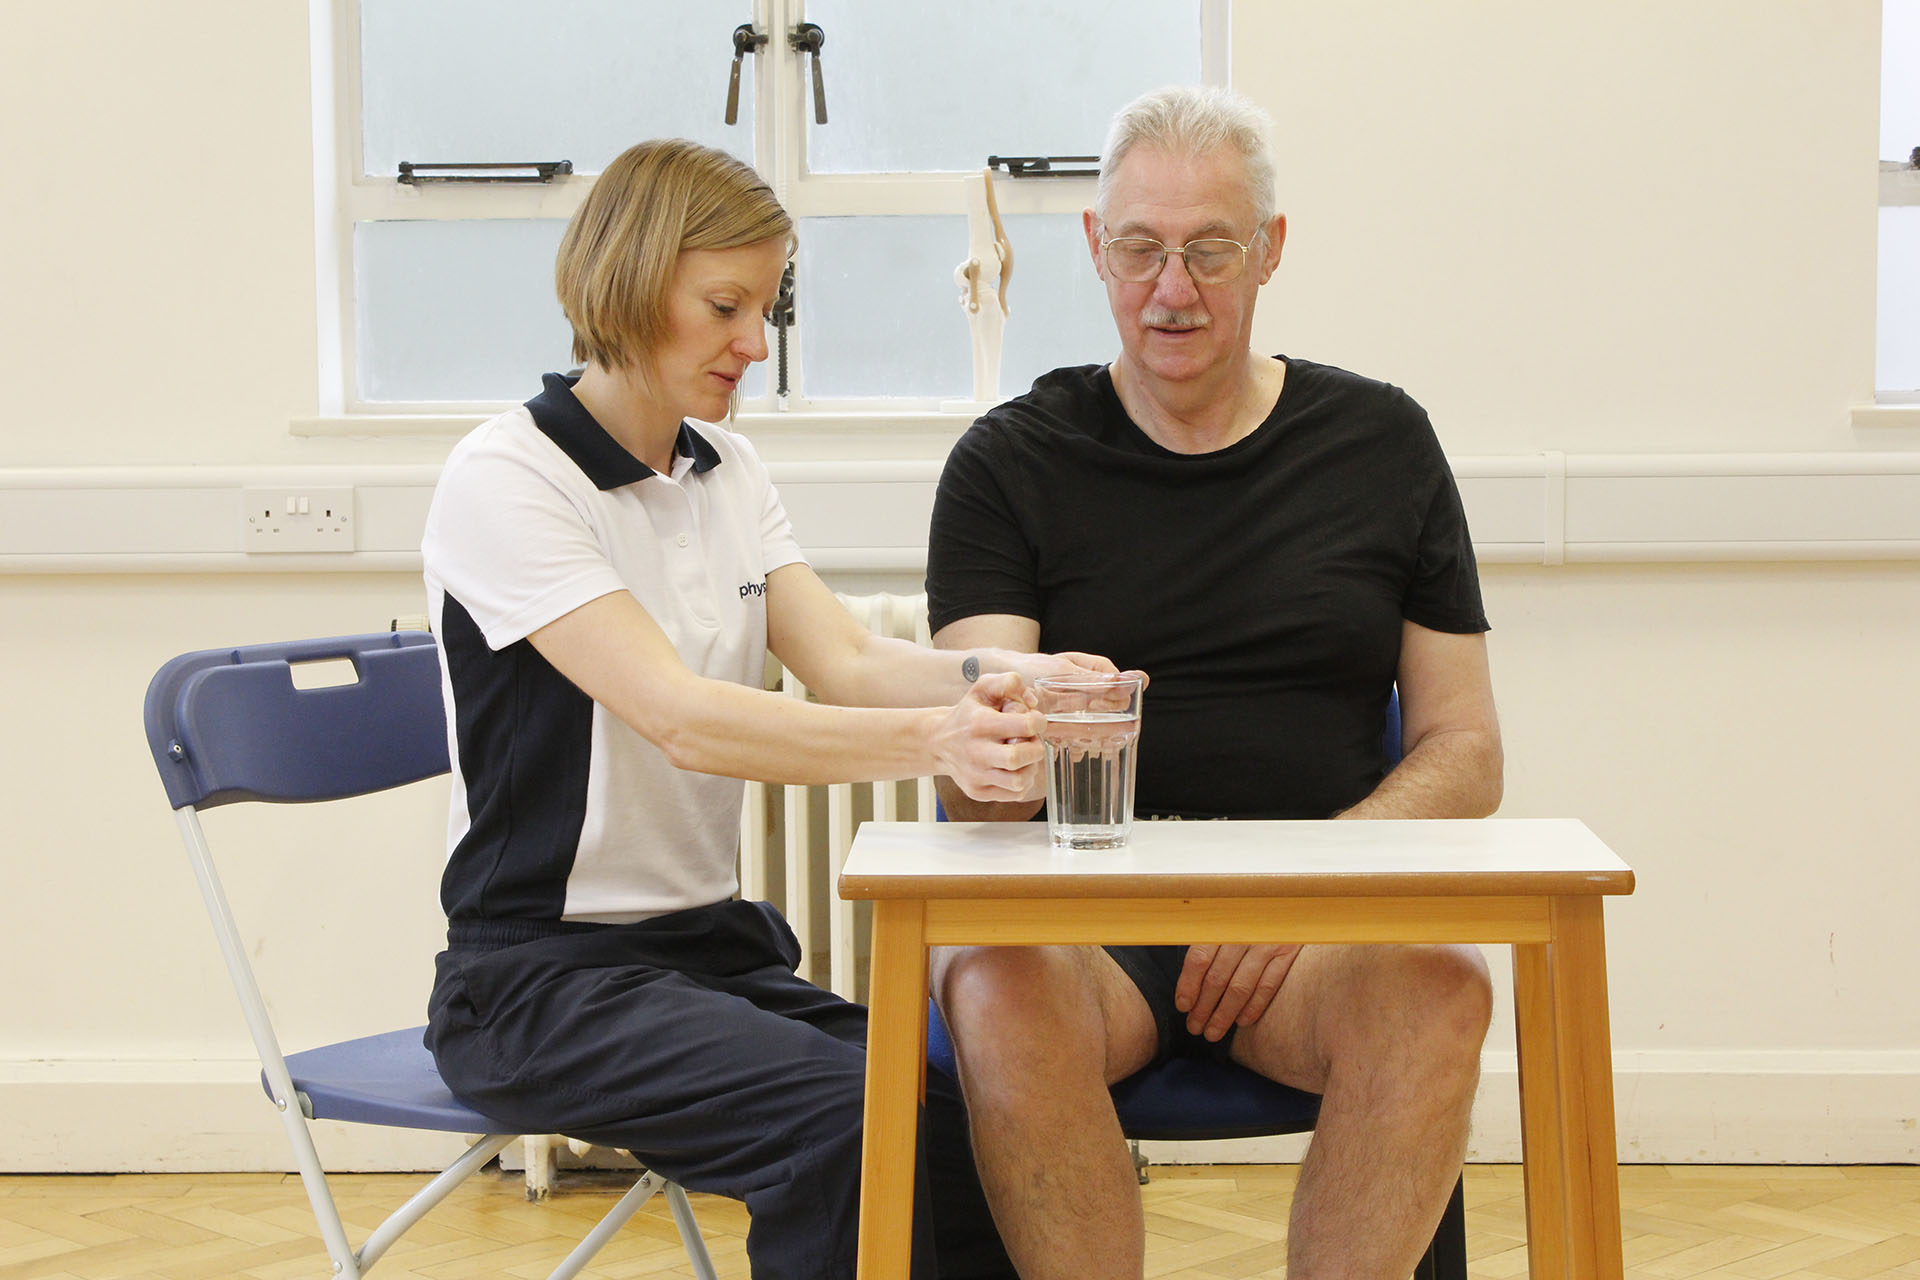 Elderly Physio treatment in Manchester Physio clinic